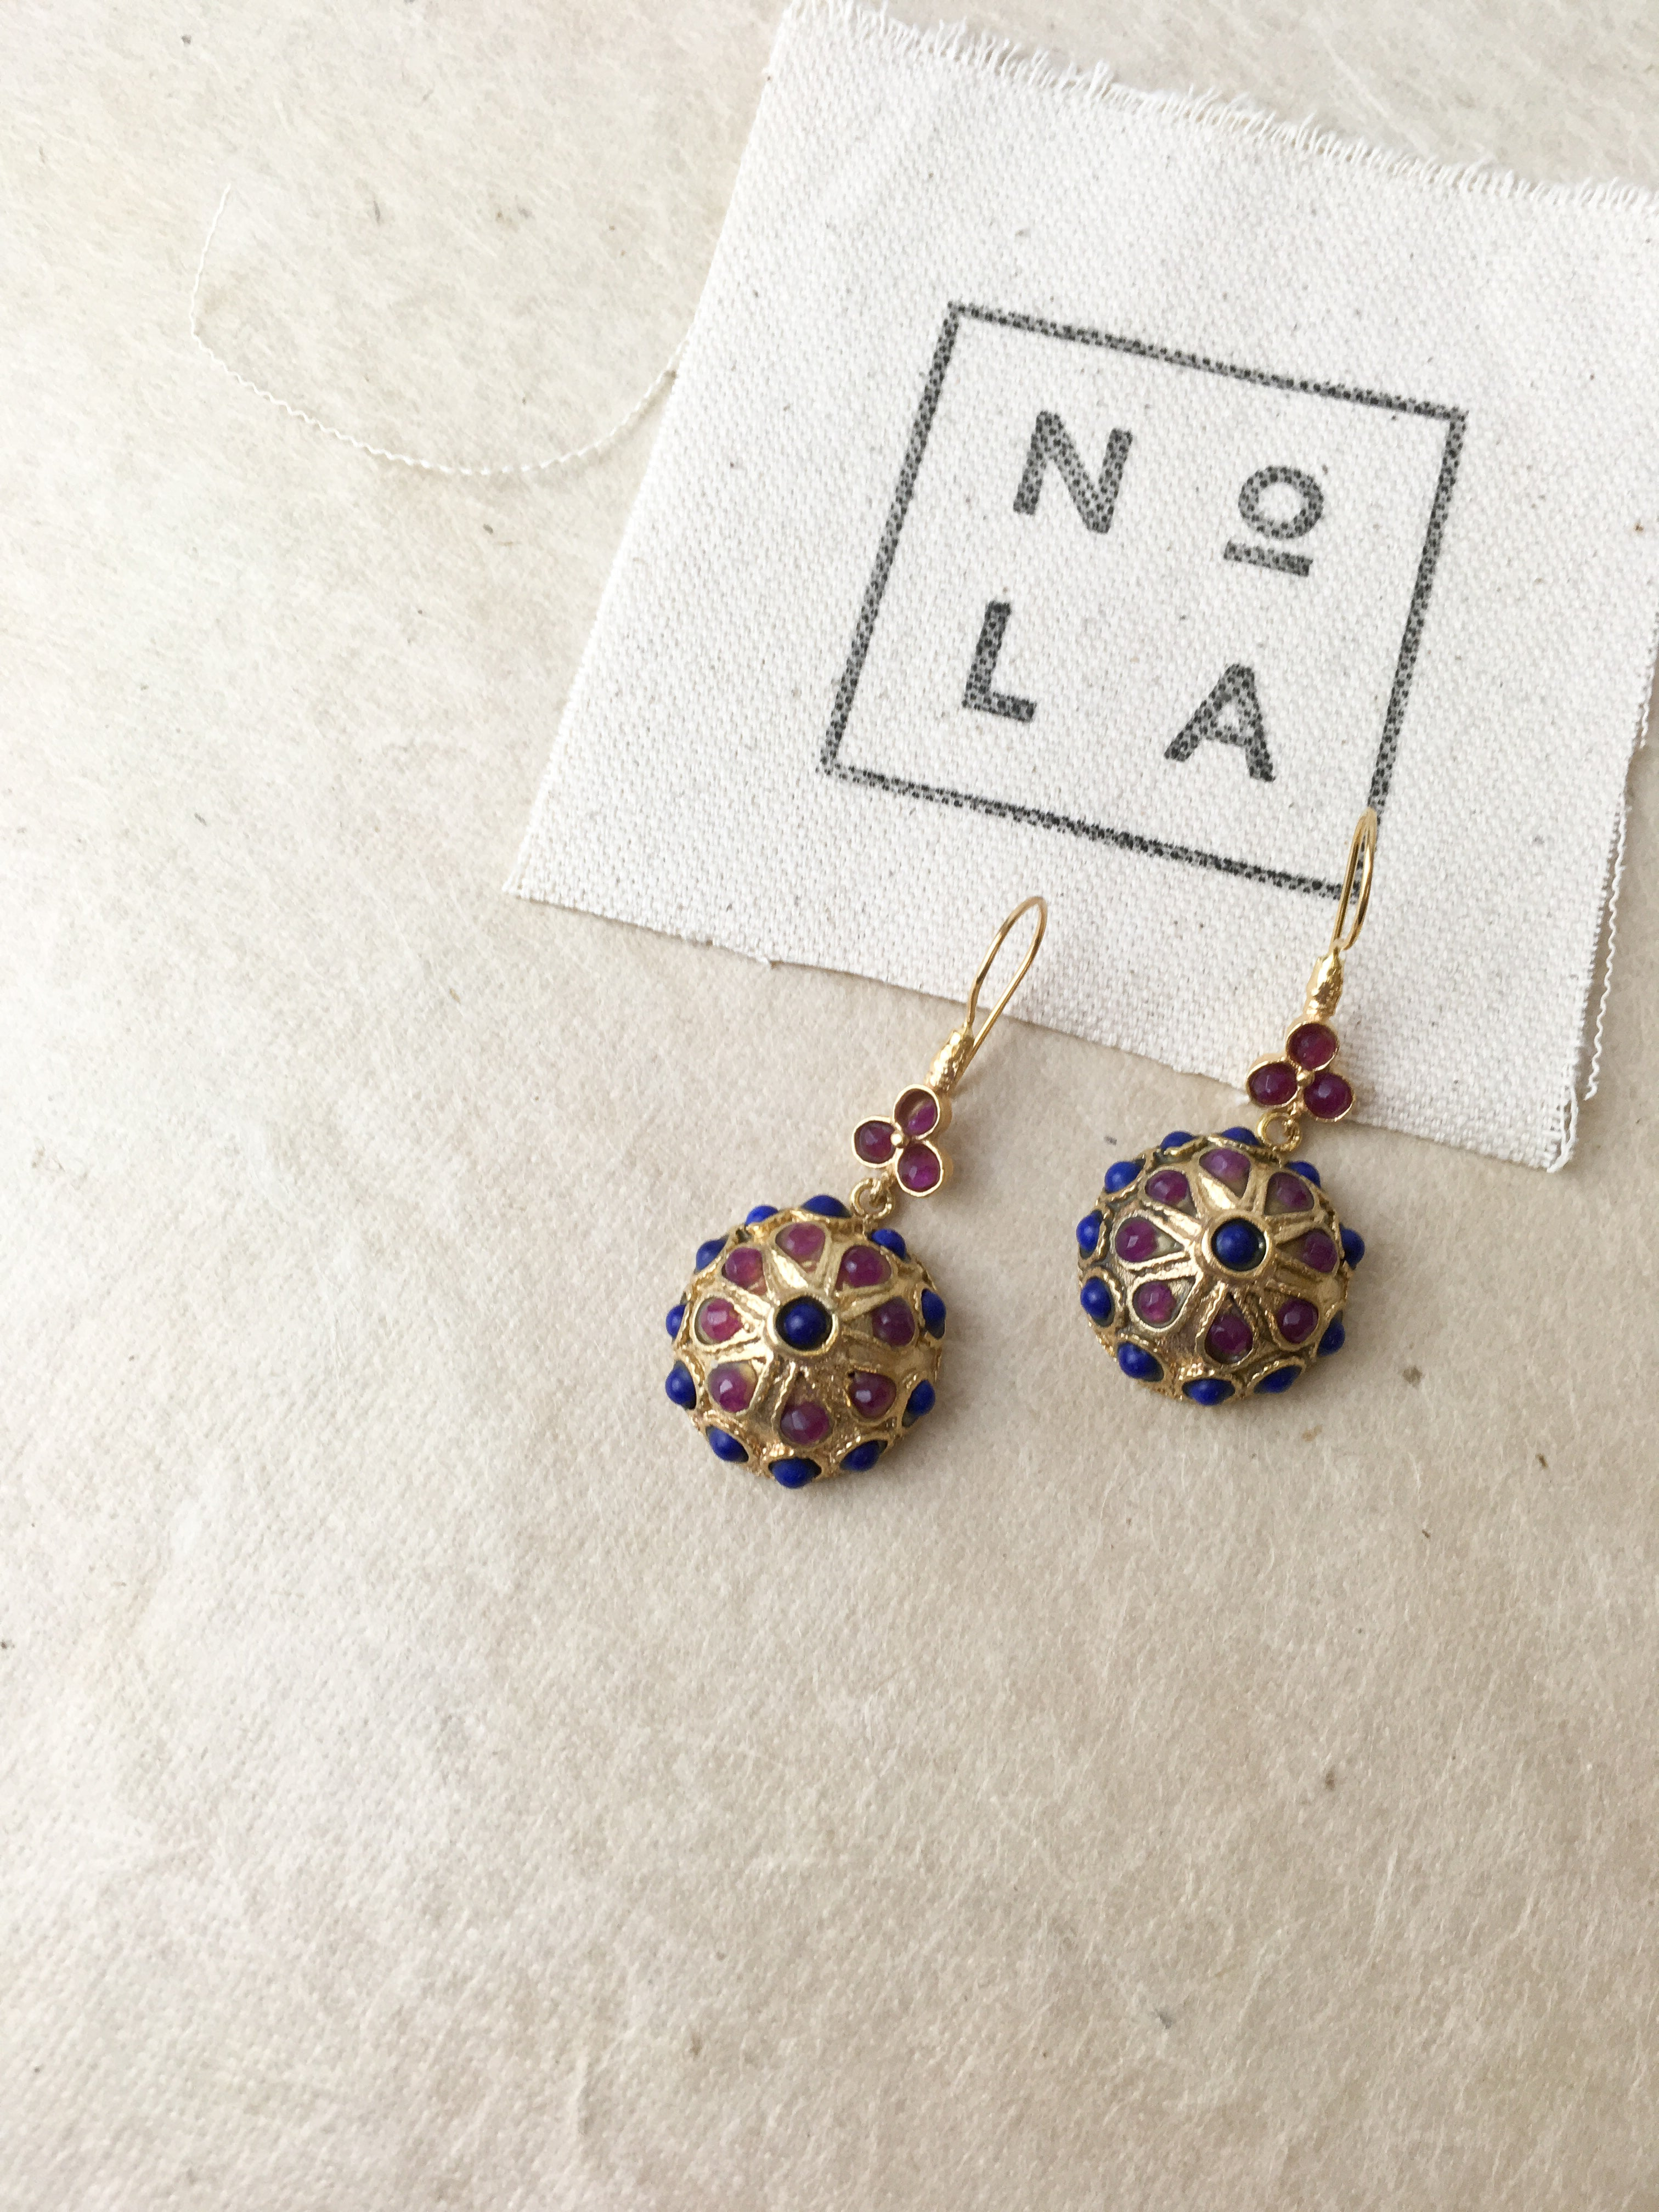 Ottoman Small Pendant earrings in Blue and Purple 00-6